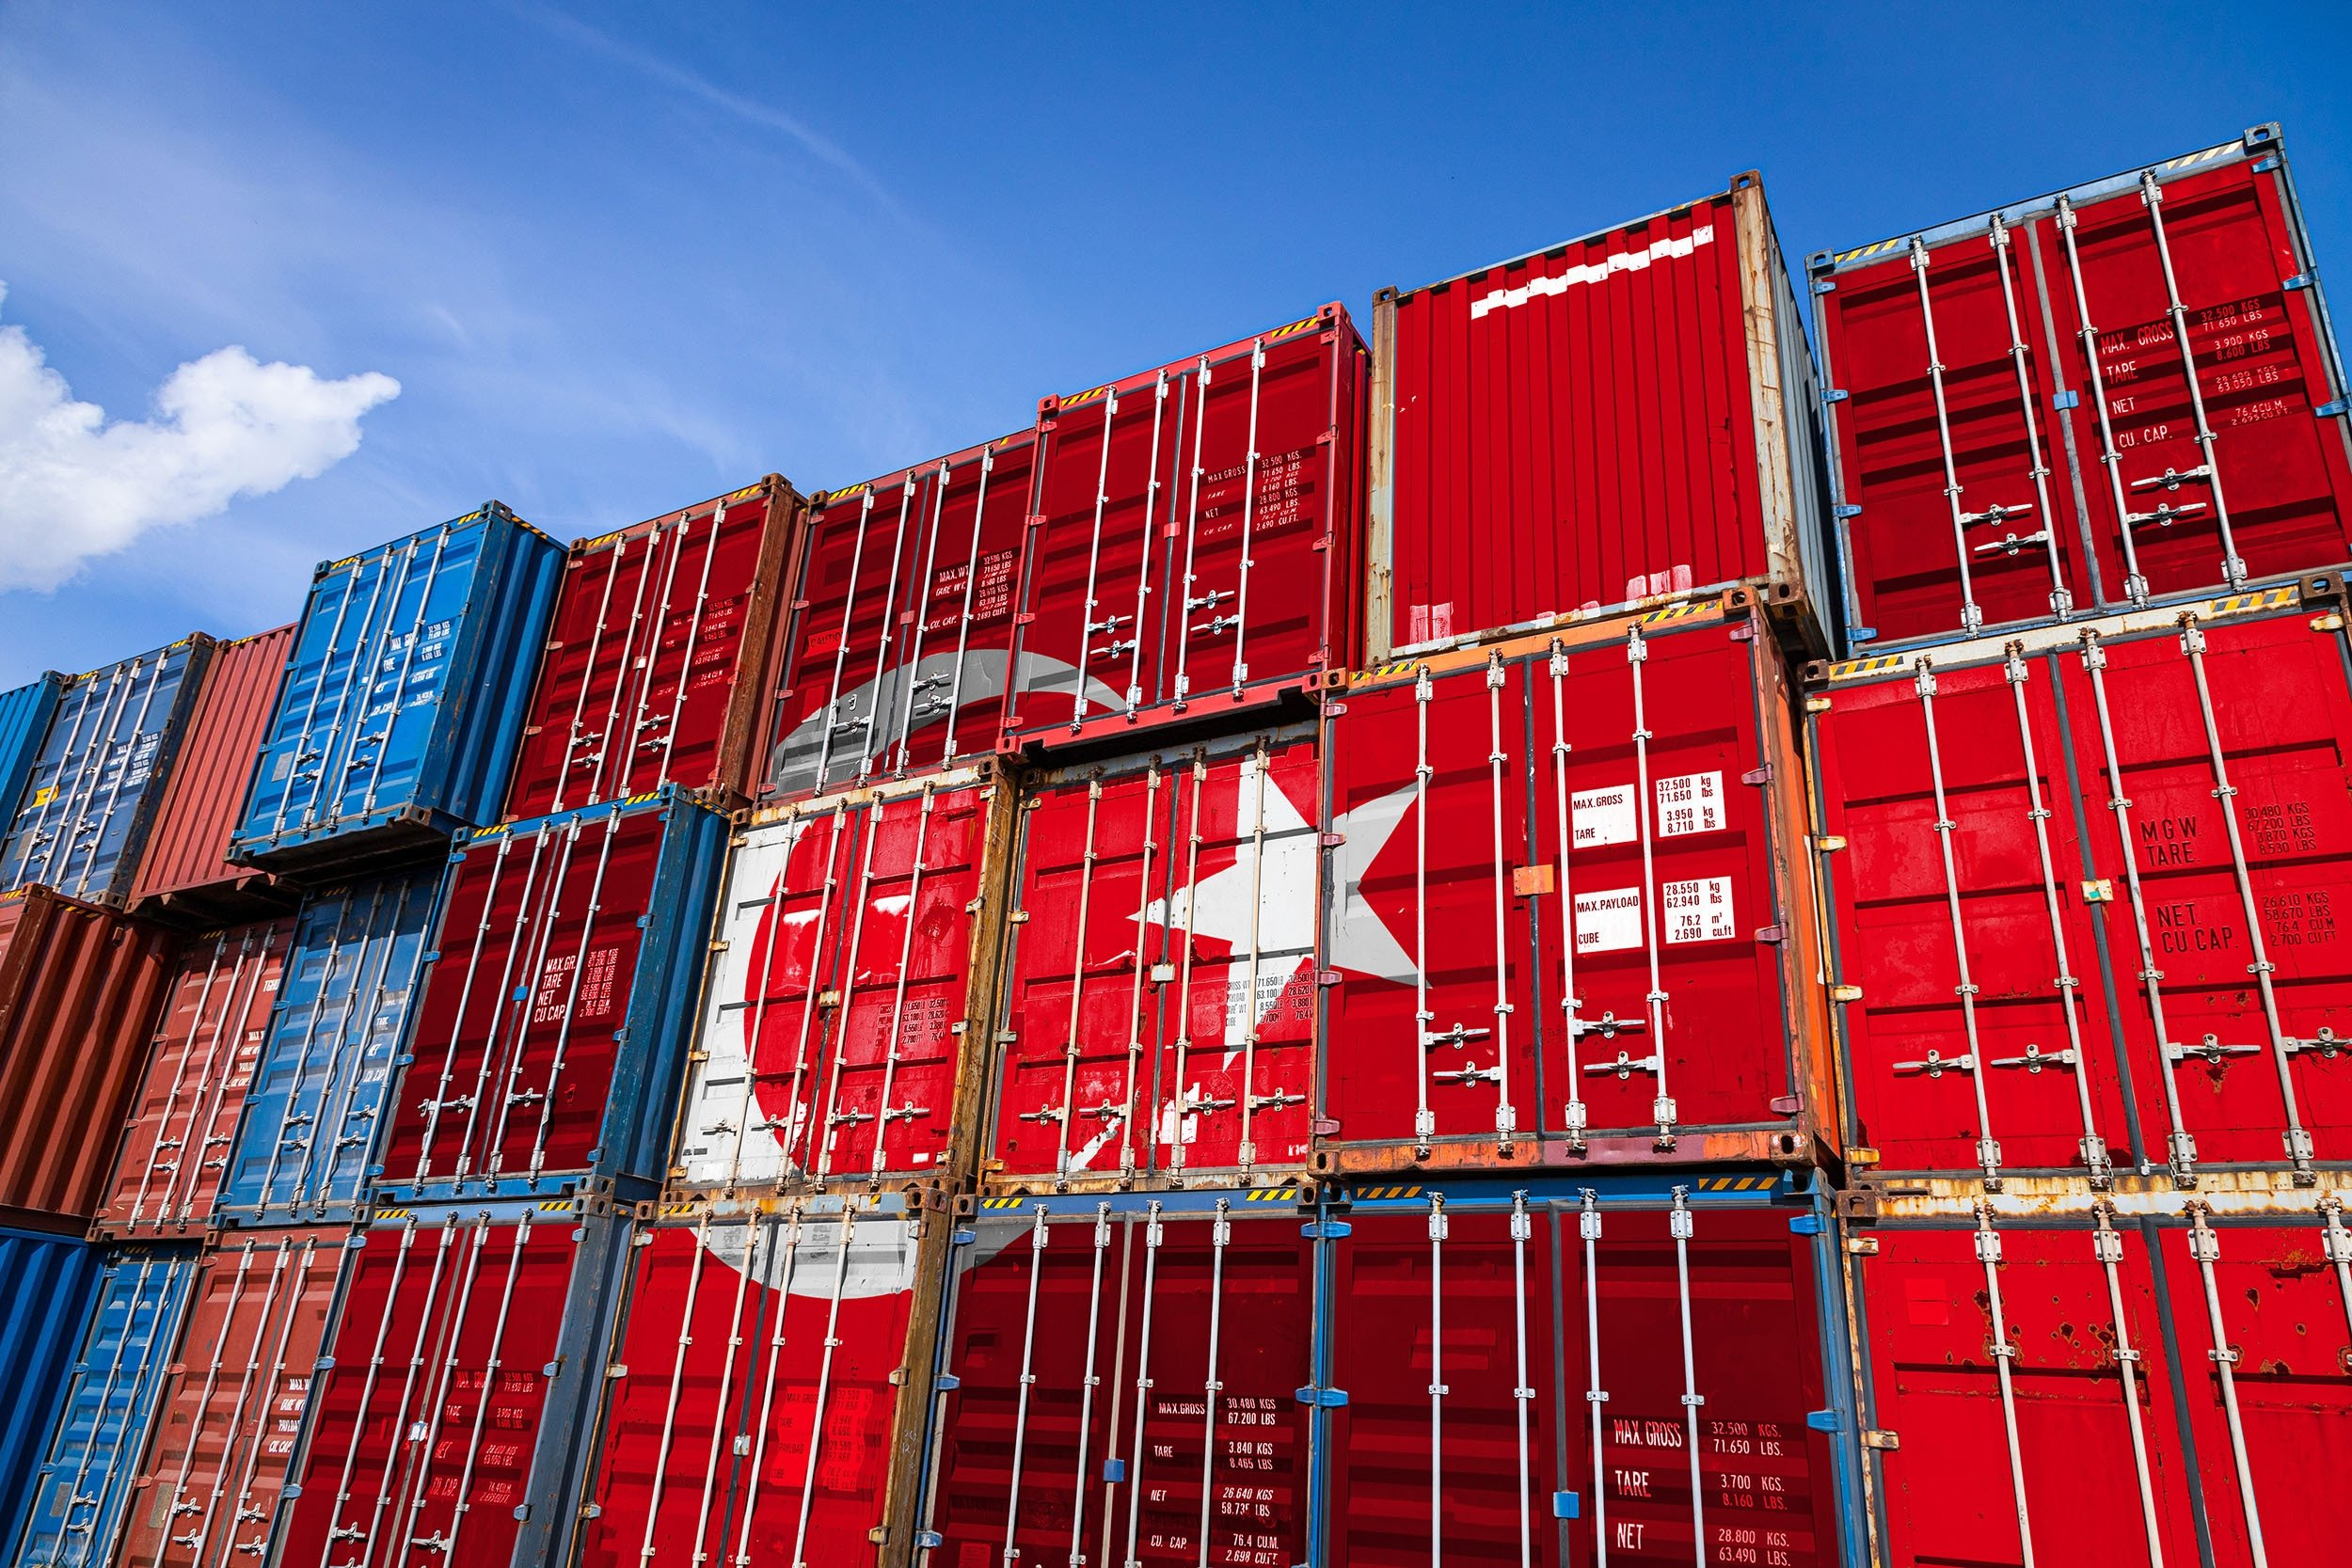 The national flag of Turkey adorns metal containers for storing goods. (Shutterstock Photo)